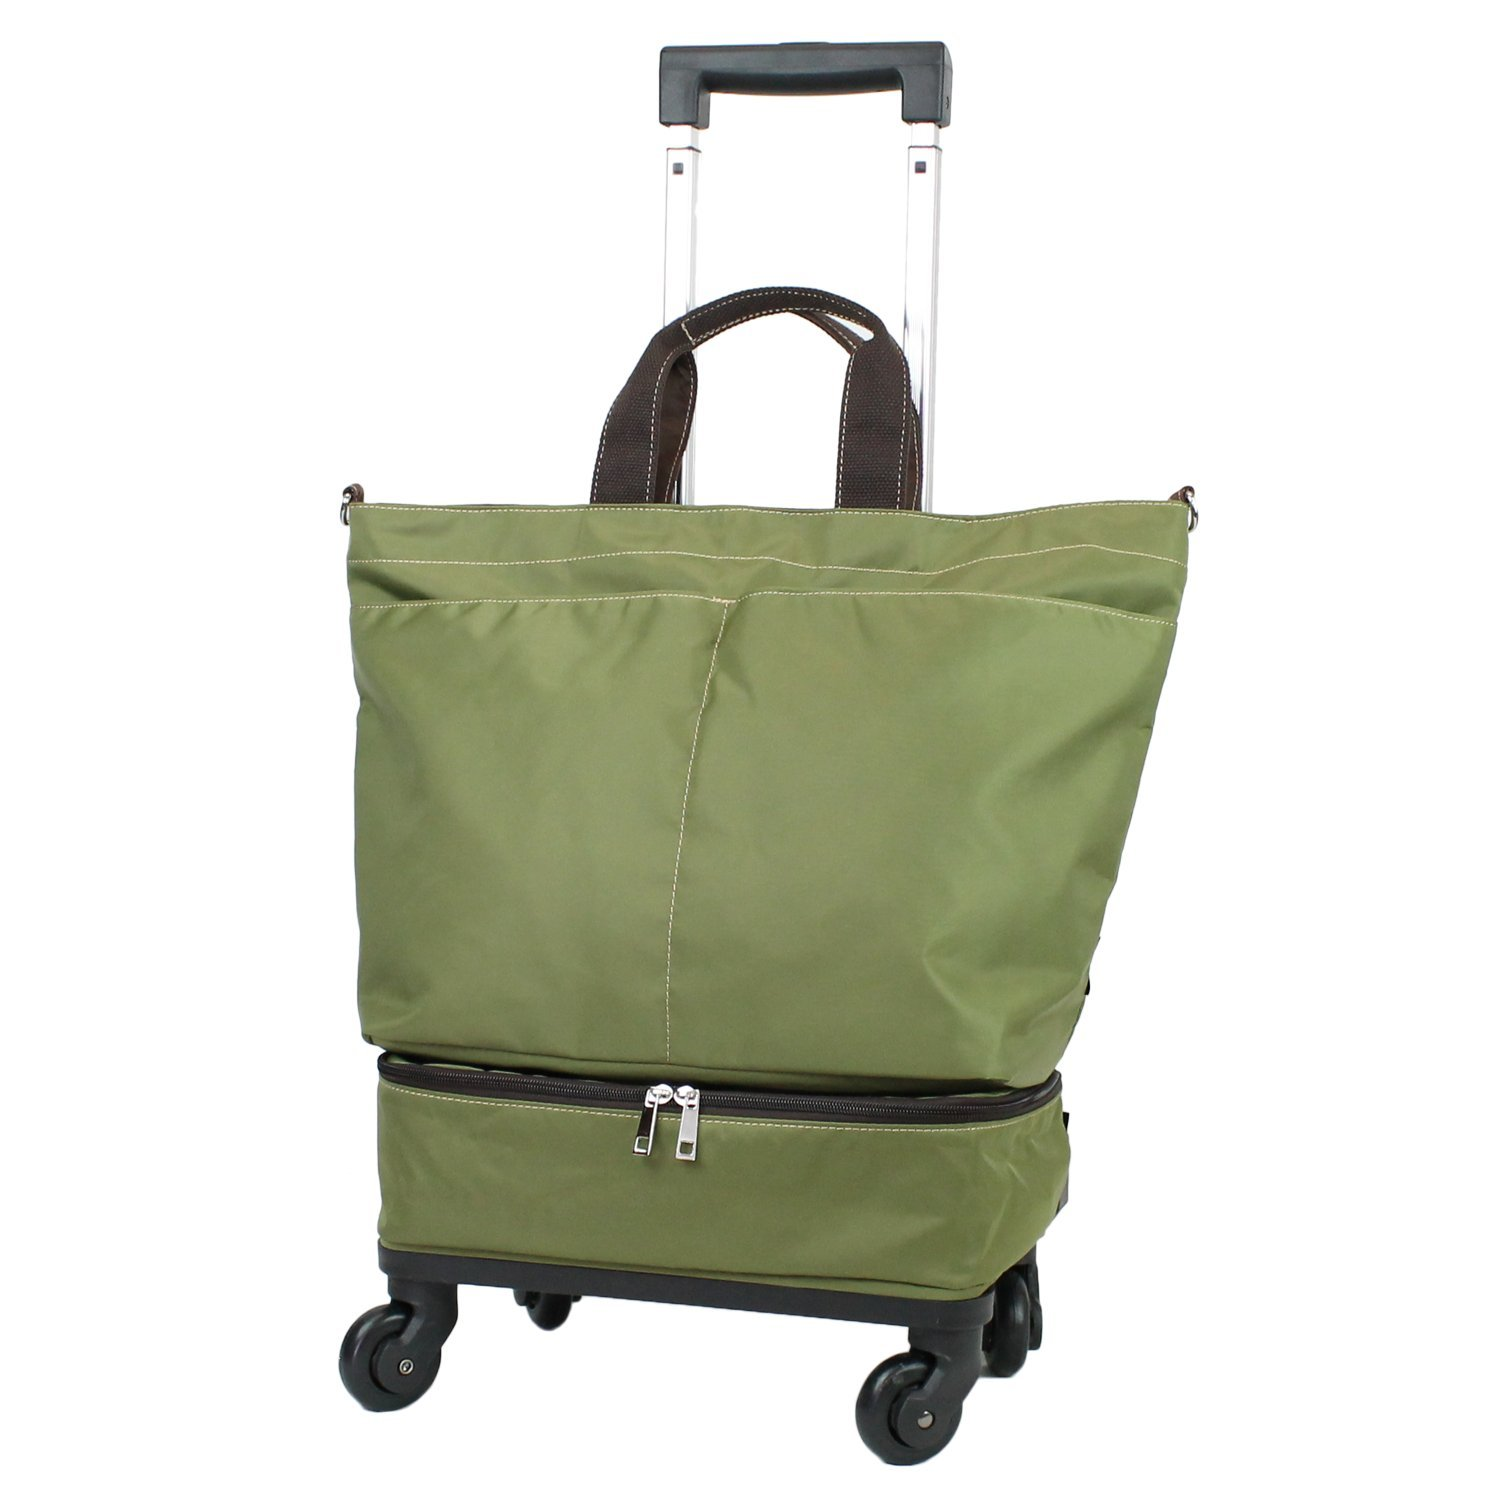 【COLOCOLO by MOIERG】 Rolling Shopper Tote Bag Carry-on Trolley Cabin Suitcase (Olive khaki)